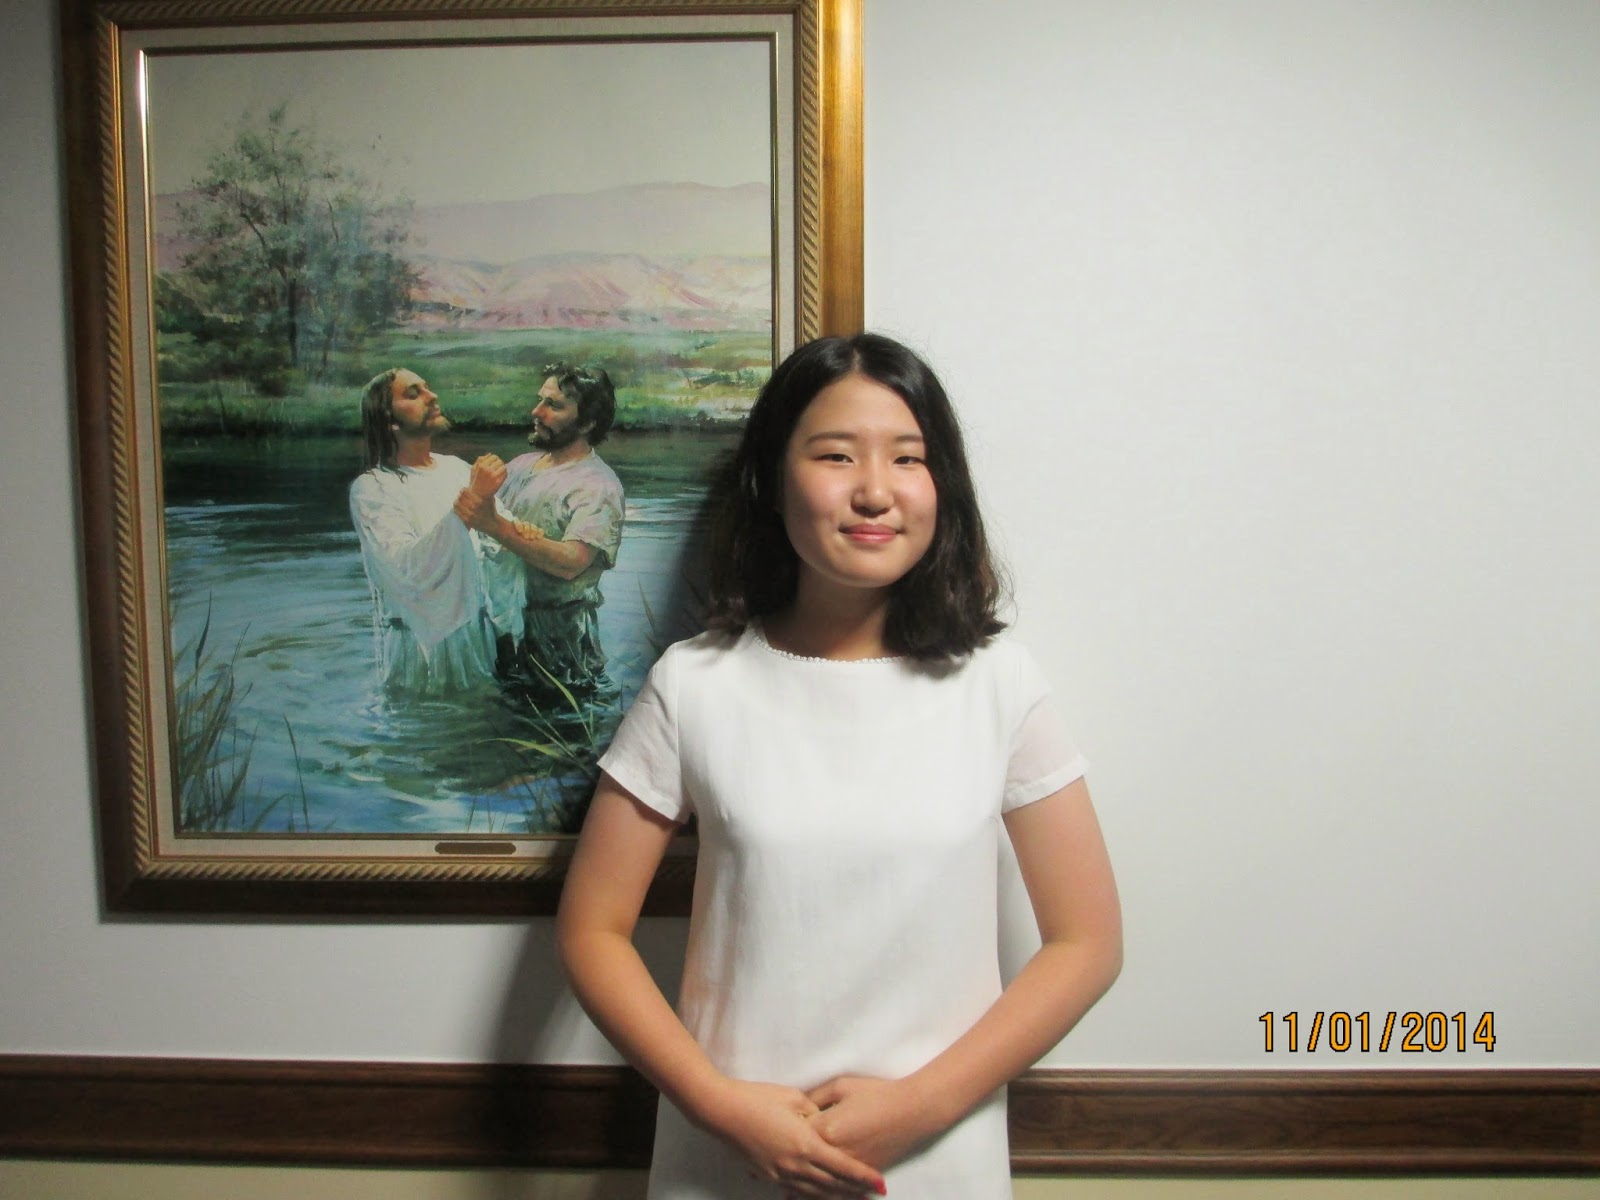 kim min sun at her baptism! She's so great!